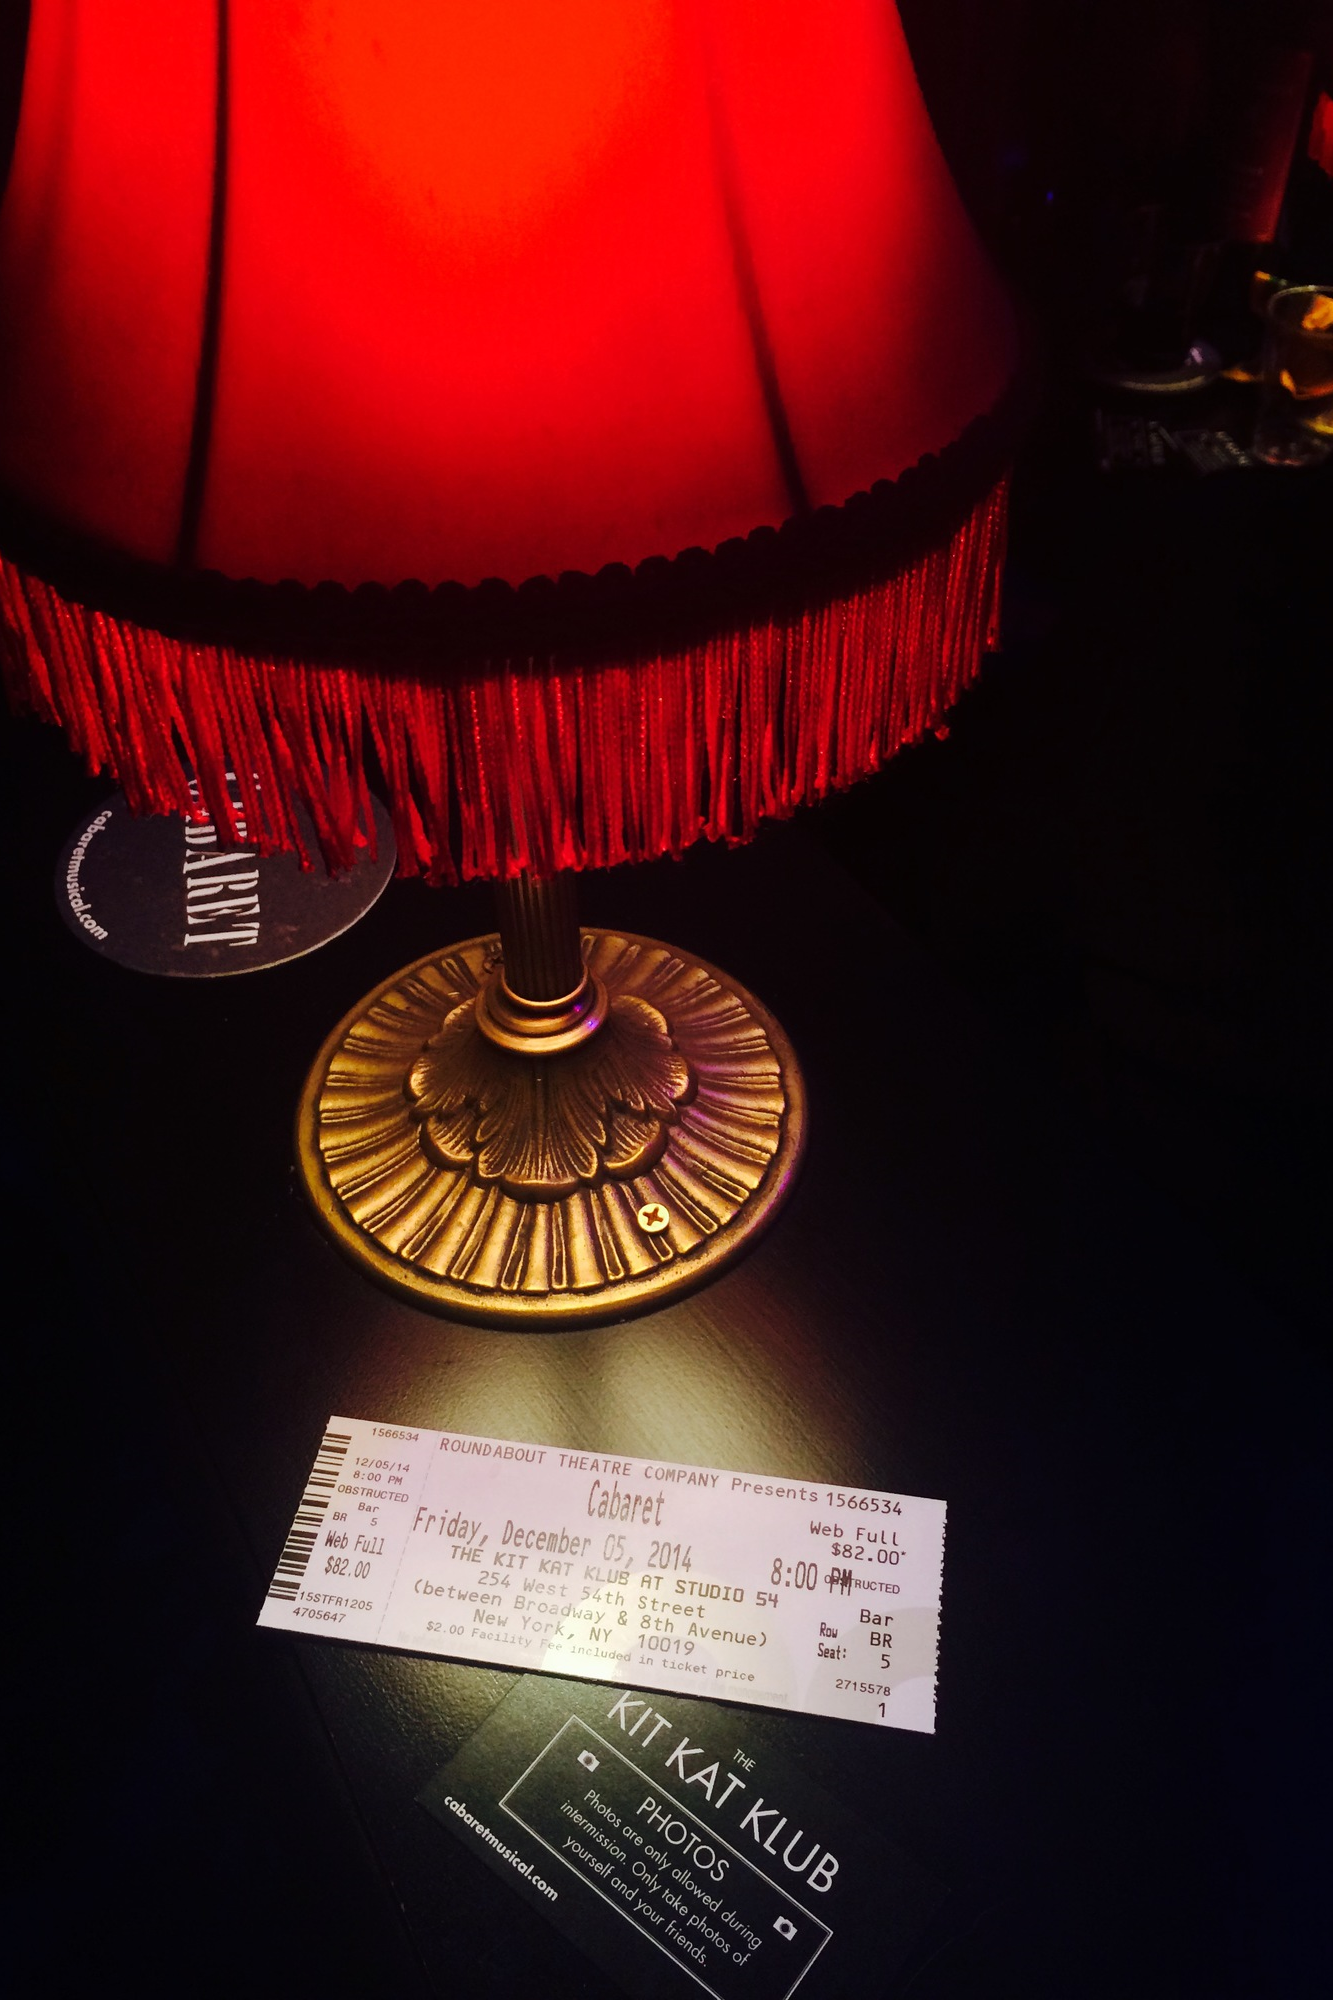 Cabaret with Emma Stone and Alan Cumming was incredible.  Go see it.